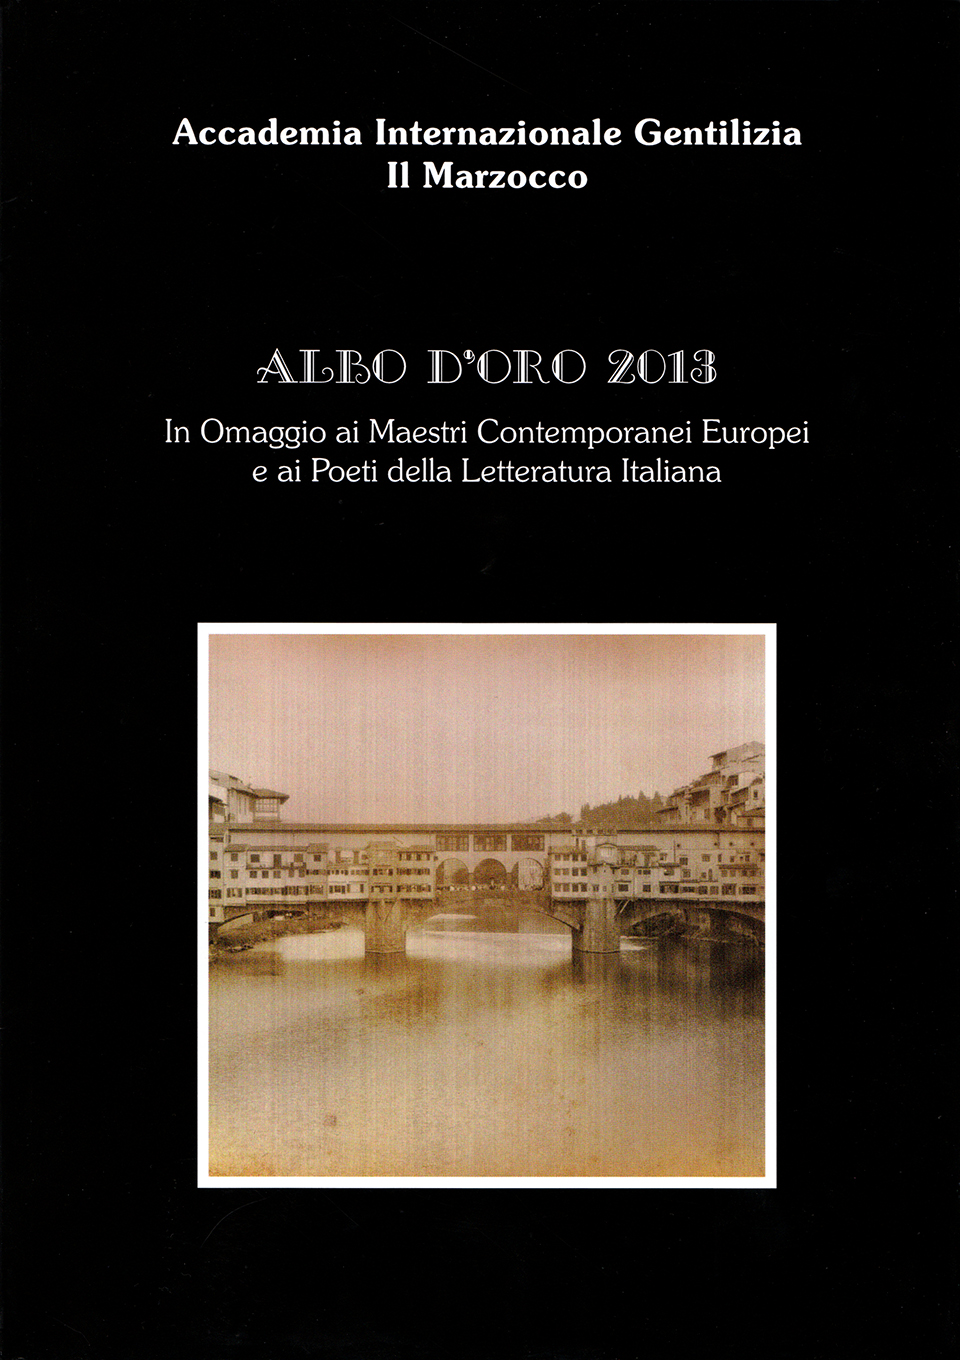 Albo D'Oro 2013 book cover